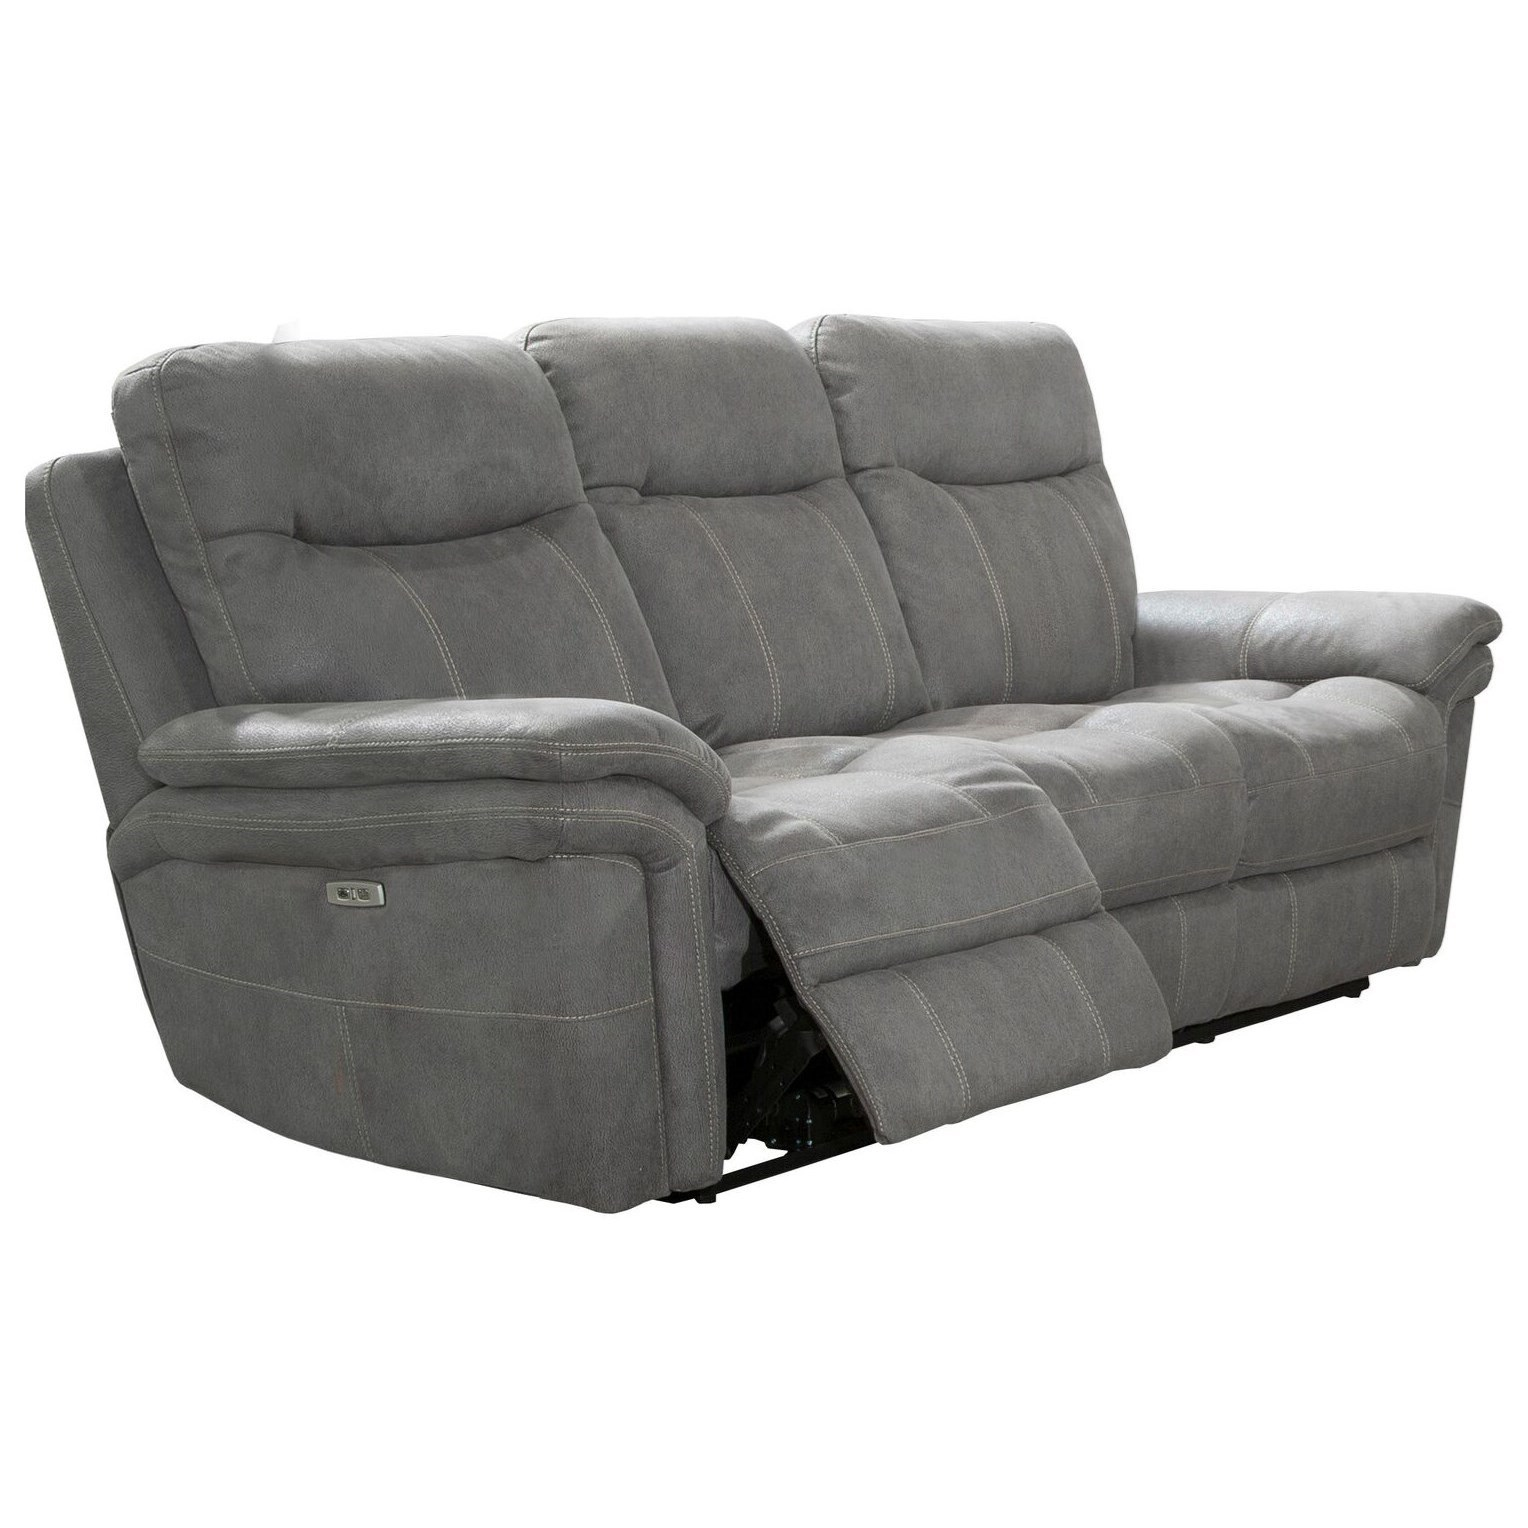 Dual Recliner Power Sofa